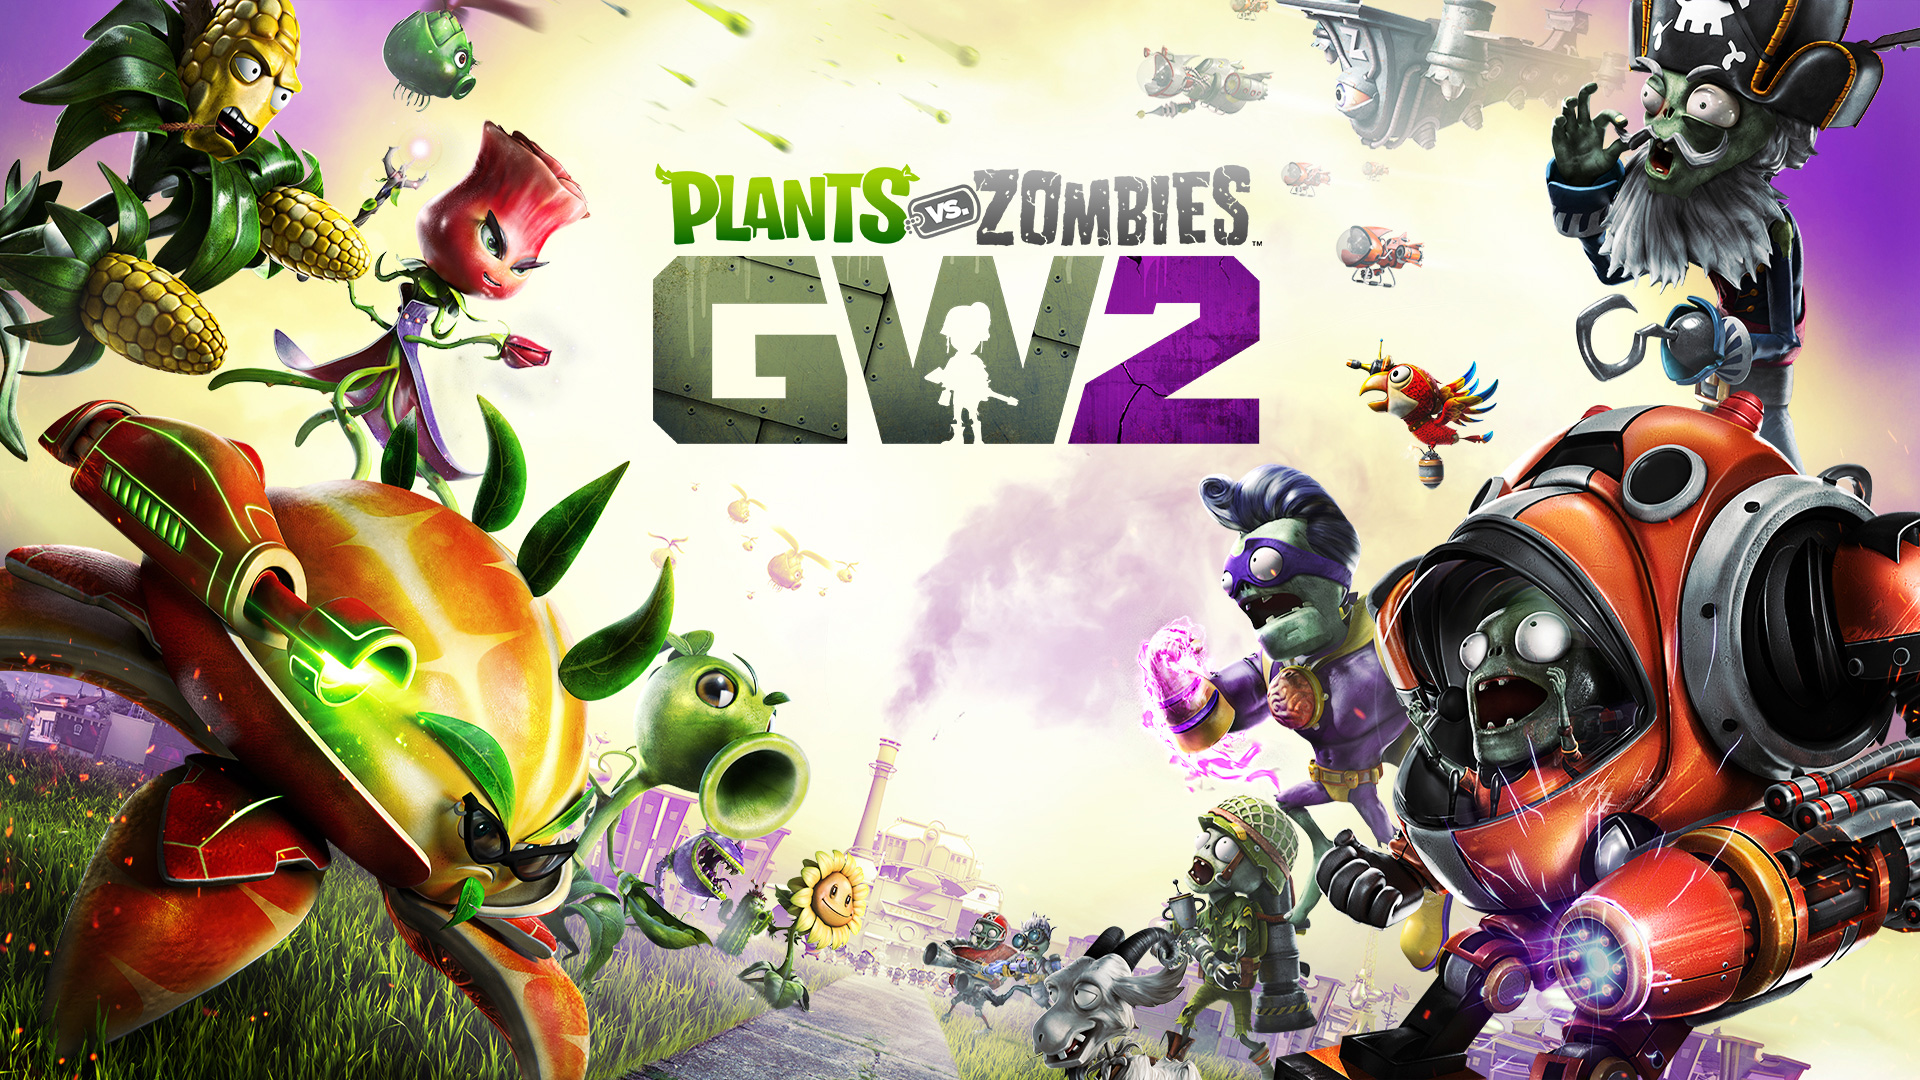 zombies garden warfare 2 weve worked hard over the last 24 months to deliver new content bug fixes balance patches and - Letter Garden Game